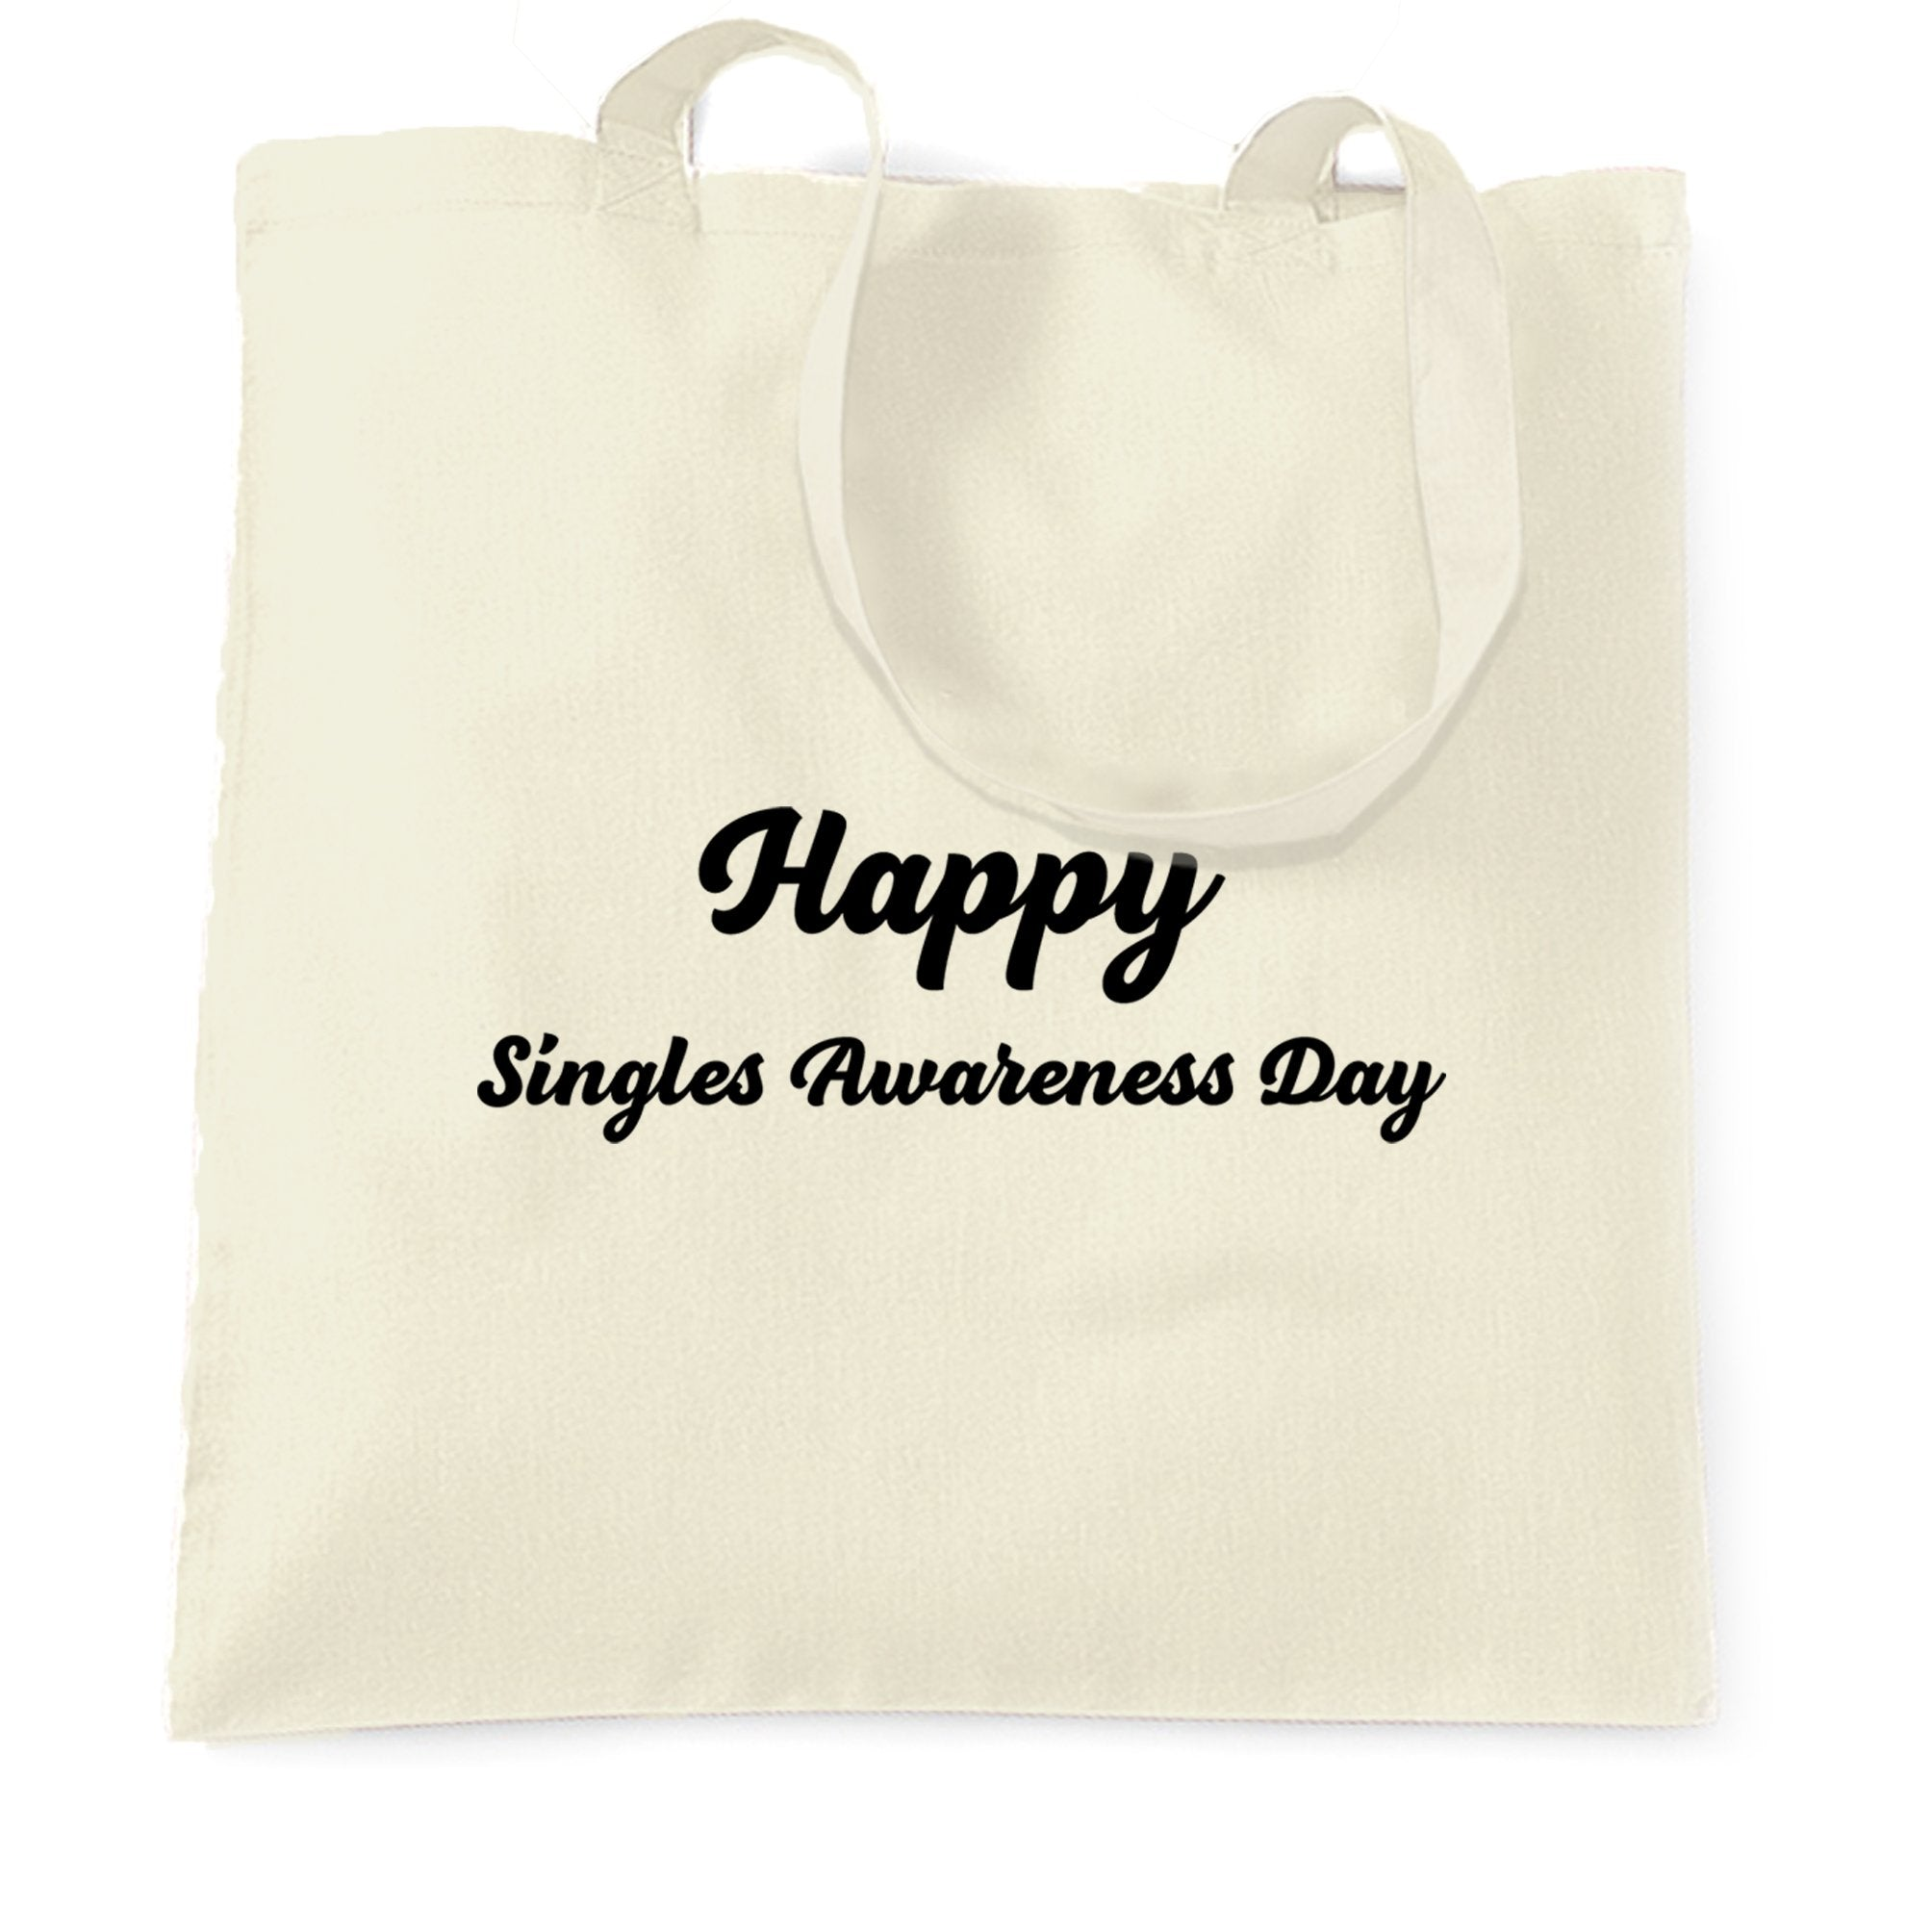 Joke Valentine's Day Tote Bag Singles Awareness Day